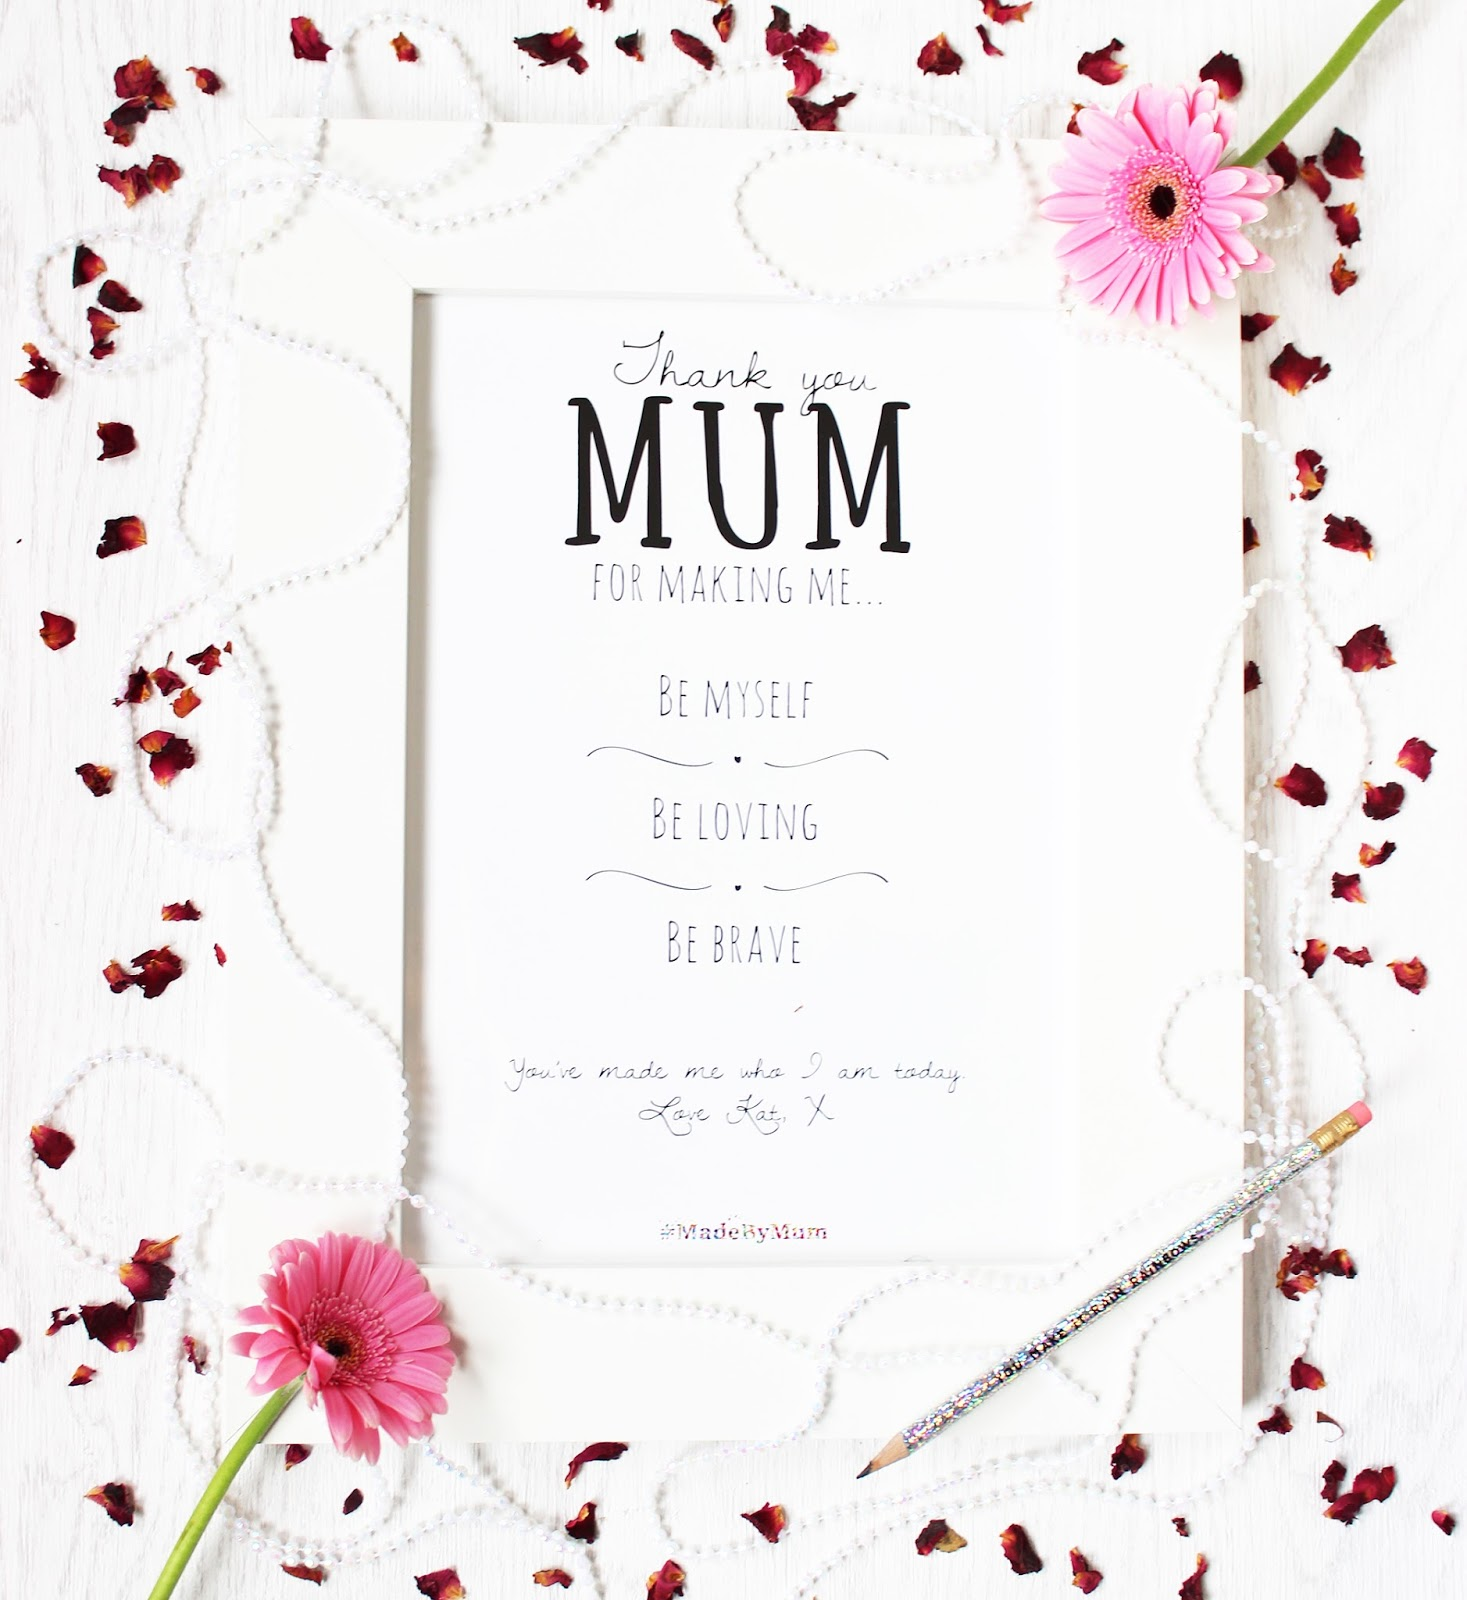 Mother's Day gifting with Getting Personal